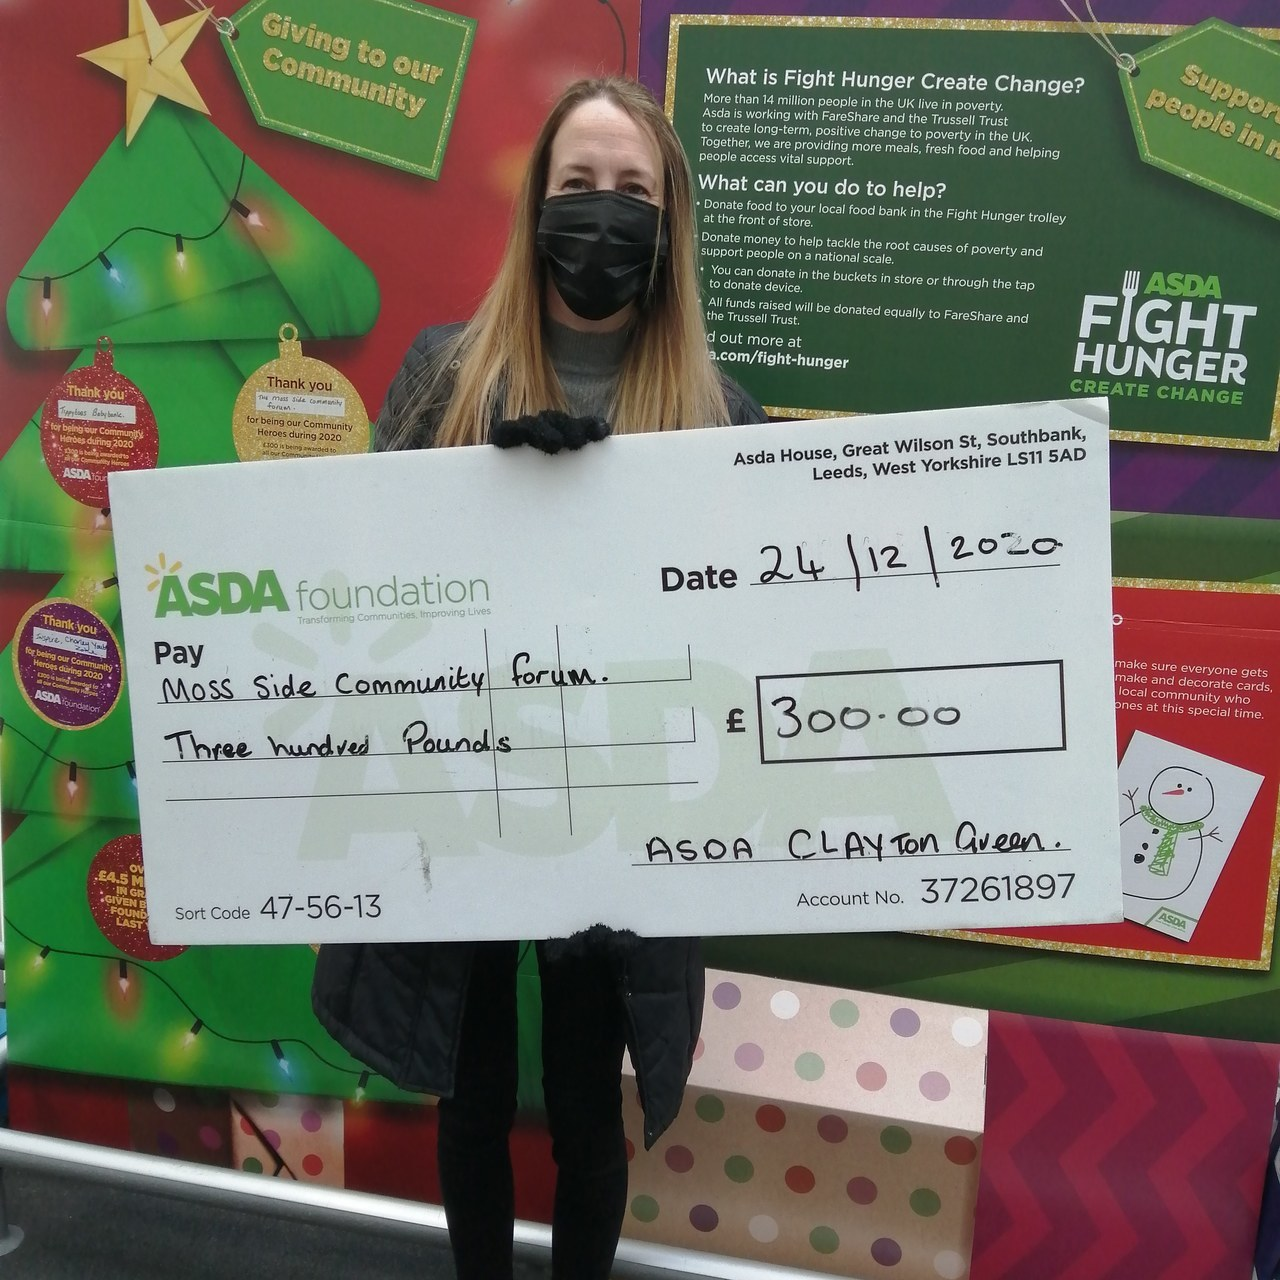 Grant for Moss Side Community Forum  | Asda Clayton Green